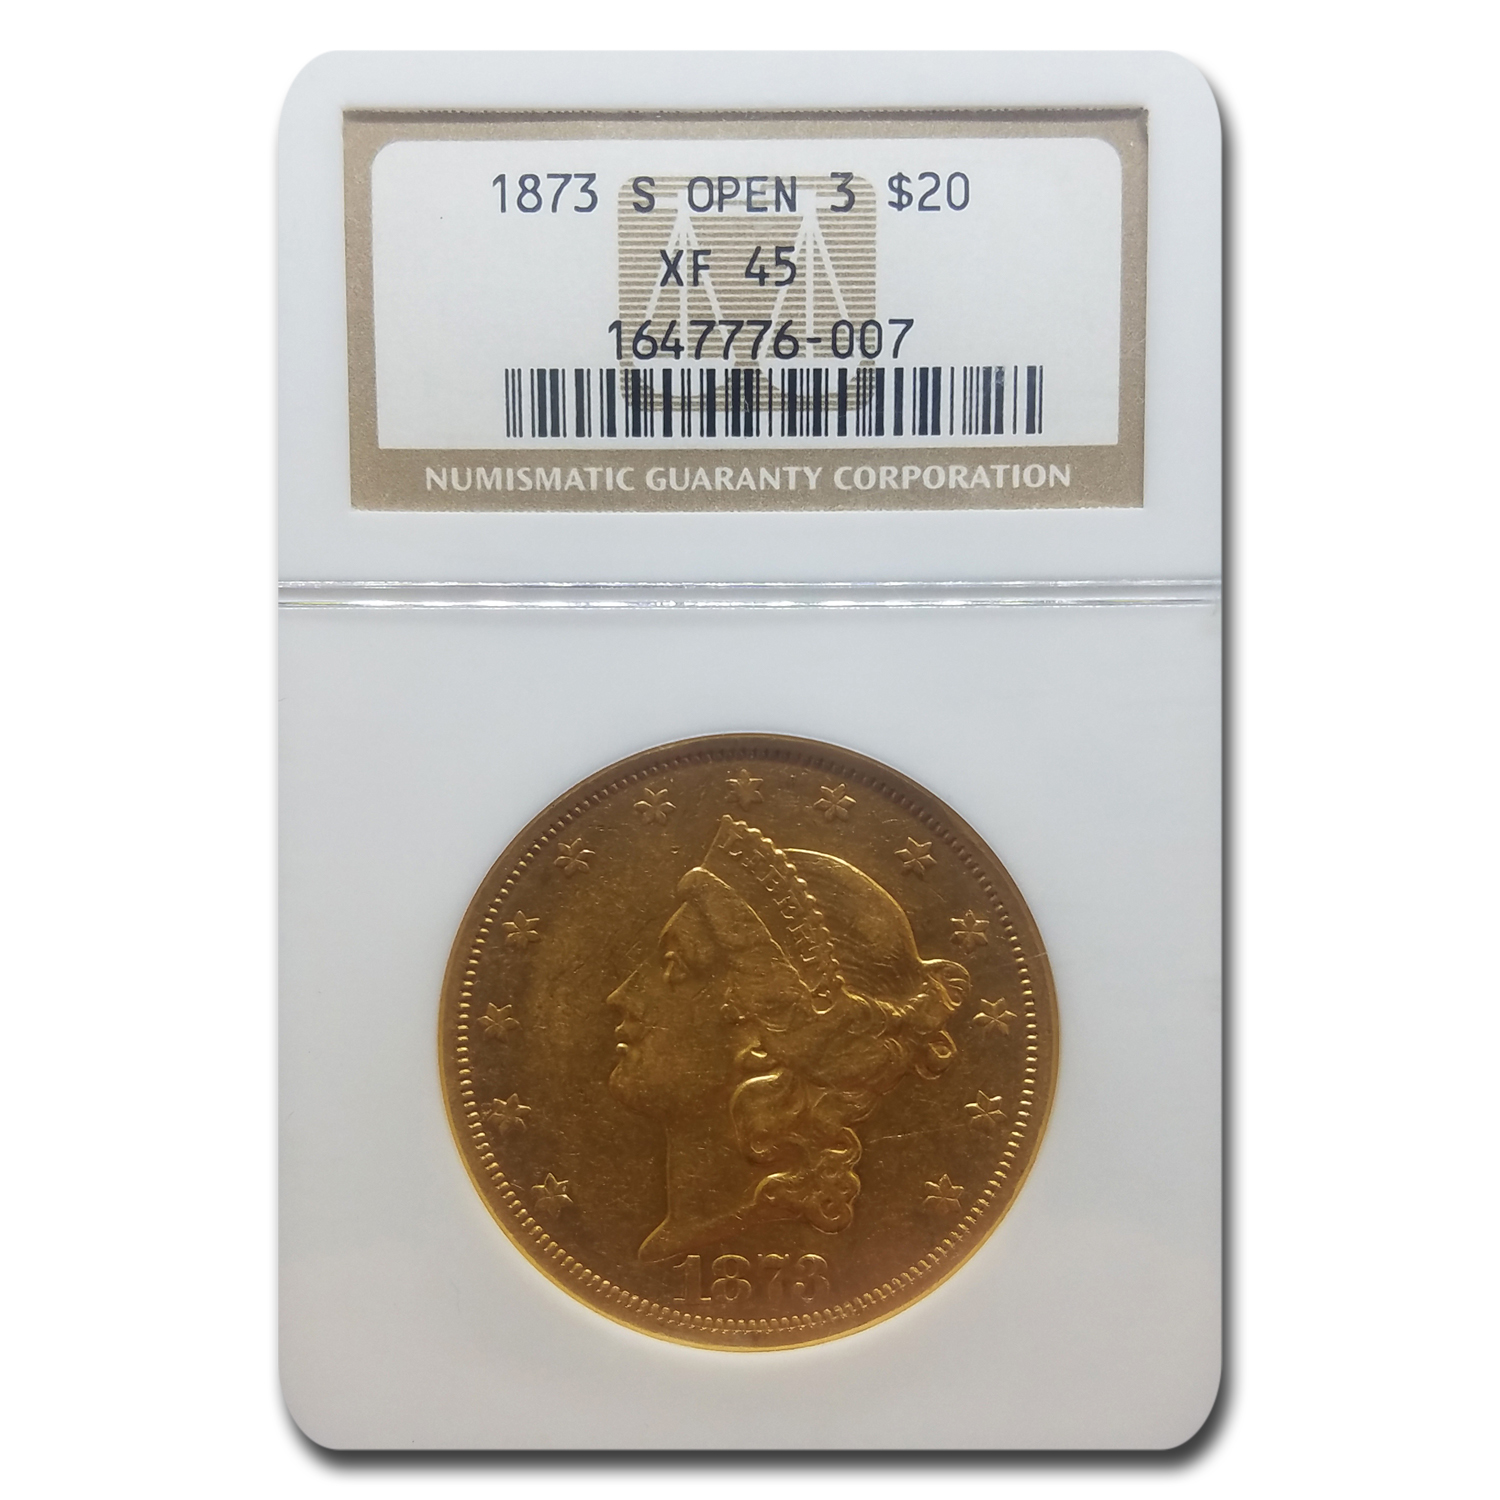 1873-S $20 Liberty Gold Double Eagle Open 3 XF-45 NGC